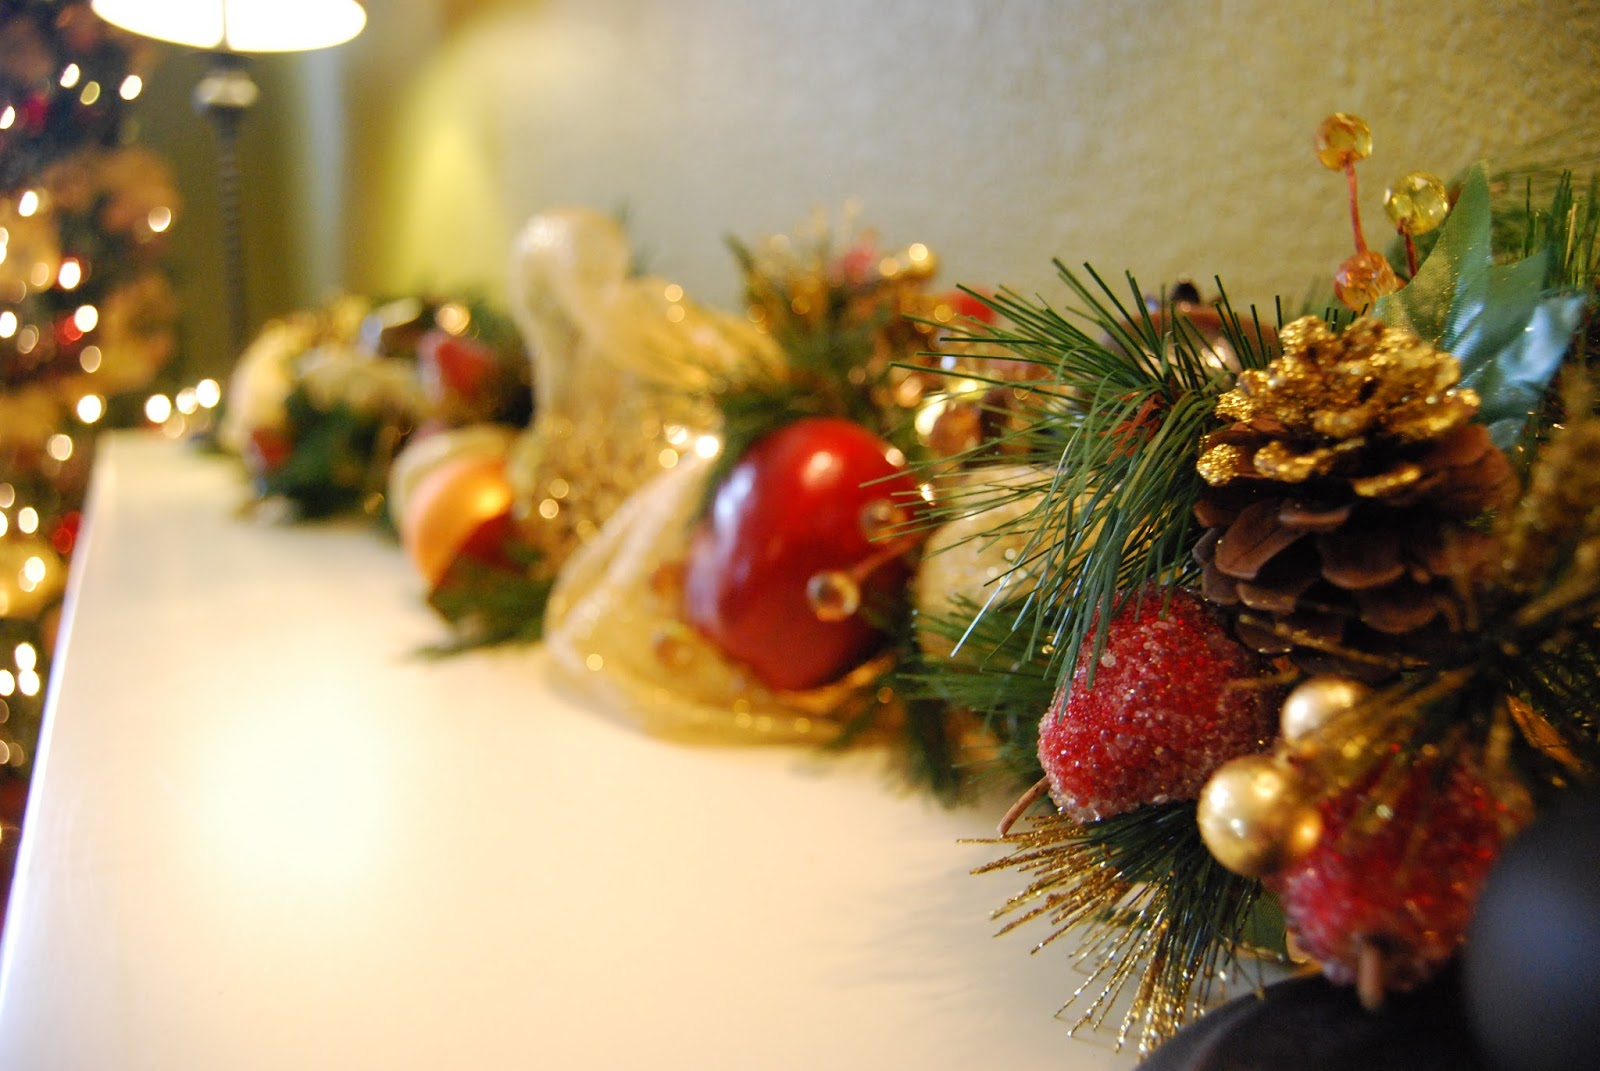 Momfessionals: Show and Tell Tuesday - Christmas Decor